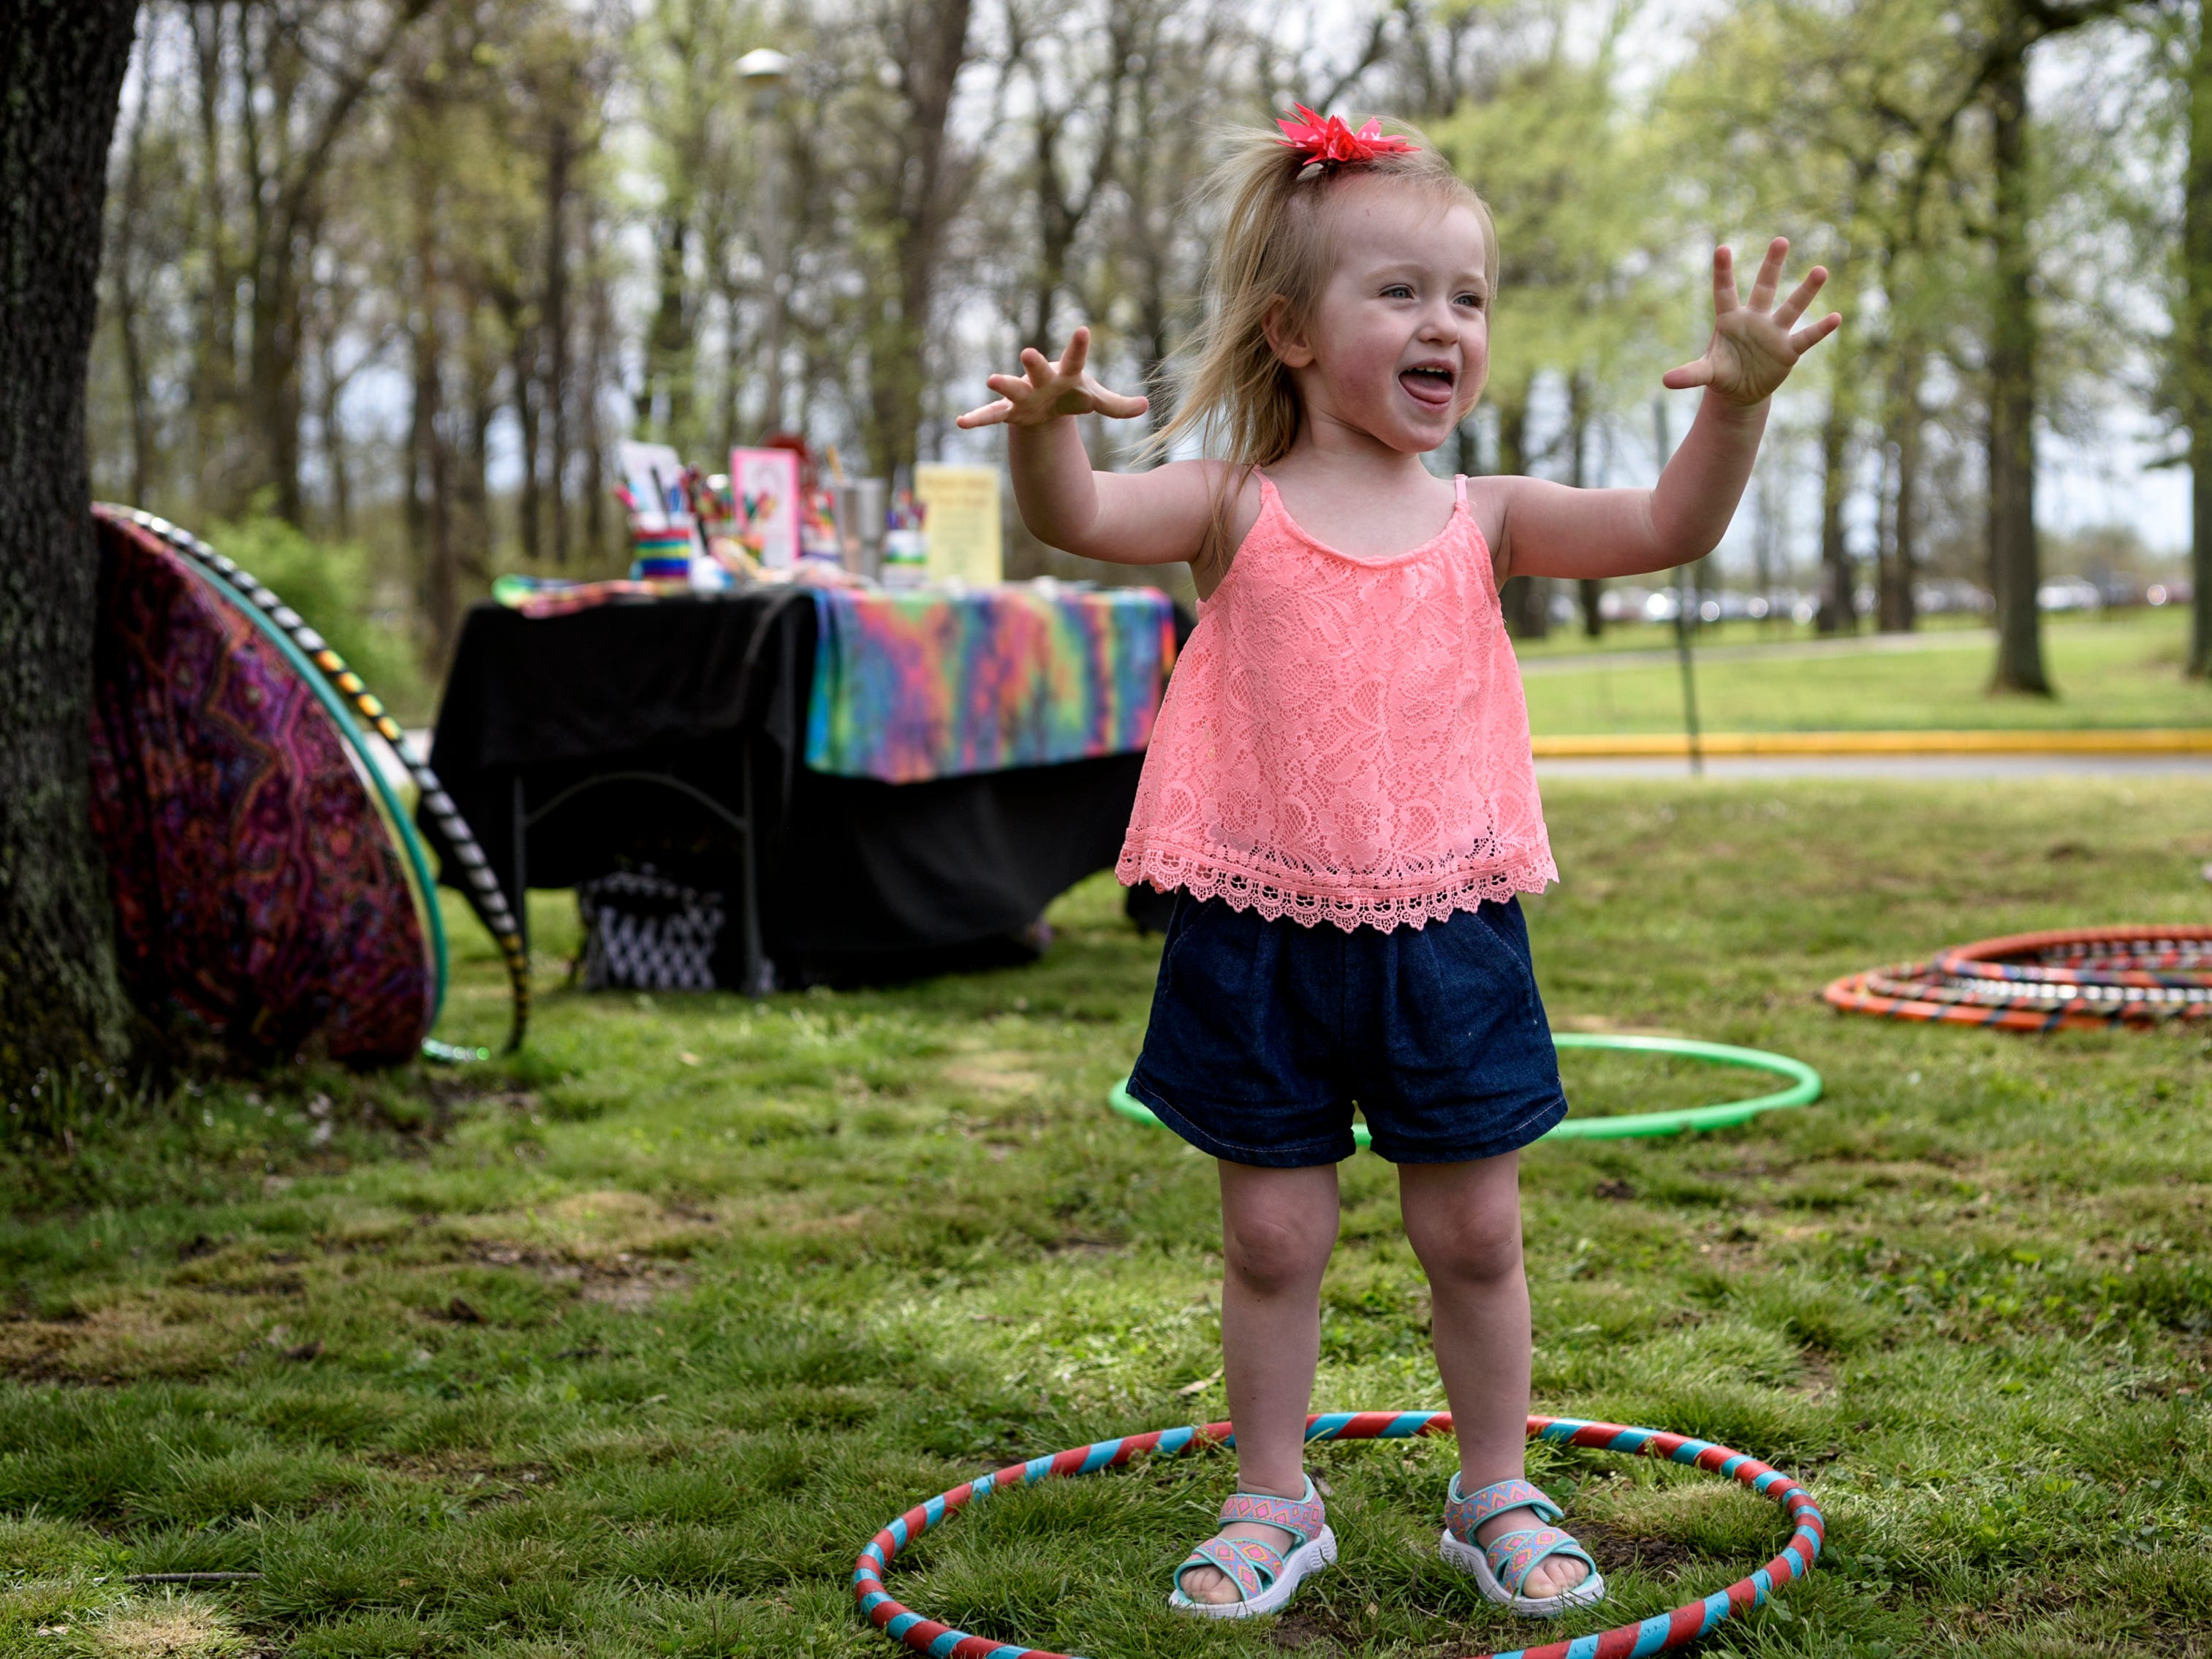 Alexis Ellis, 2, reacts to her hula hoop falling to the ground during the annual Family Fun Day for the Community Action Program of Evansville & Vanderburgh County, Inc. (CAPE) Head Start and Early Head Start Early Childhood Education programs at Wesselman Park in Evansville, Ind., Friday, April 12, 2019.